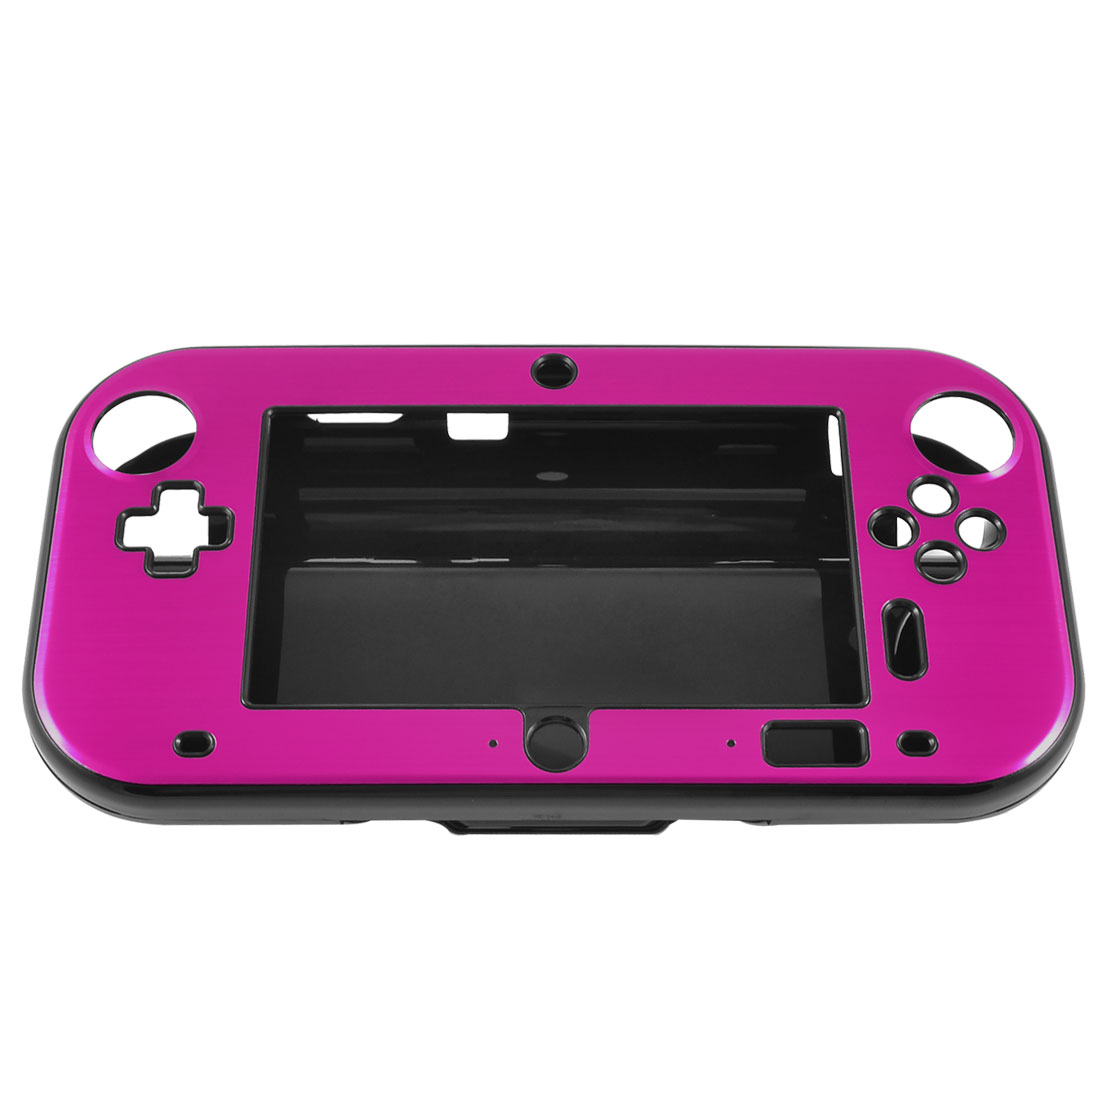 Fuchsia Aluminum Coated Black Hard Case Cover for Nintendo Wii U Gamepad